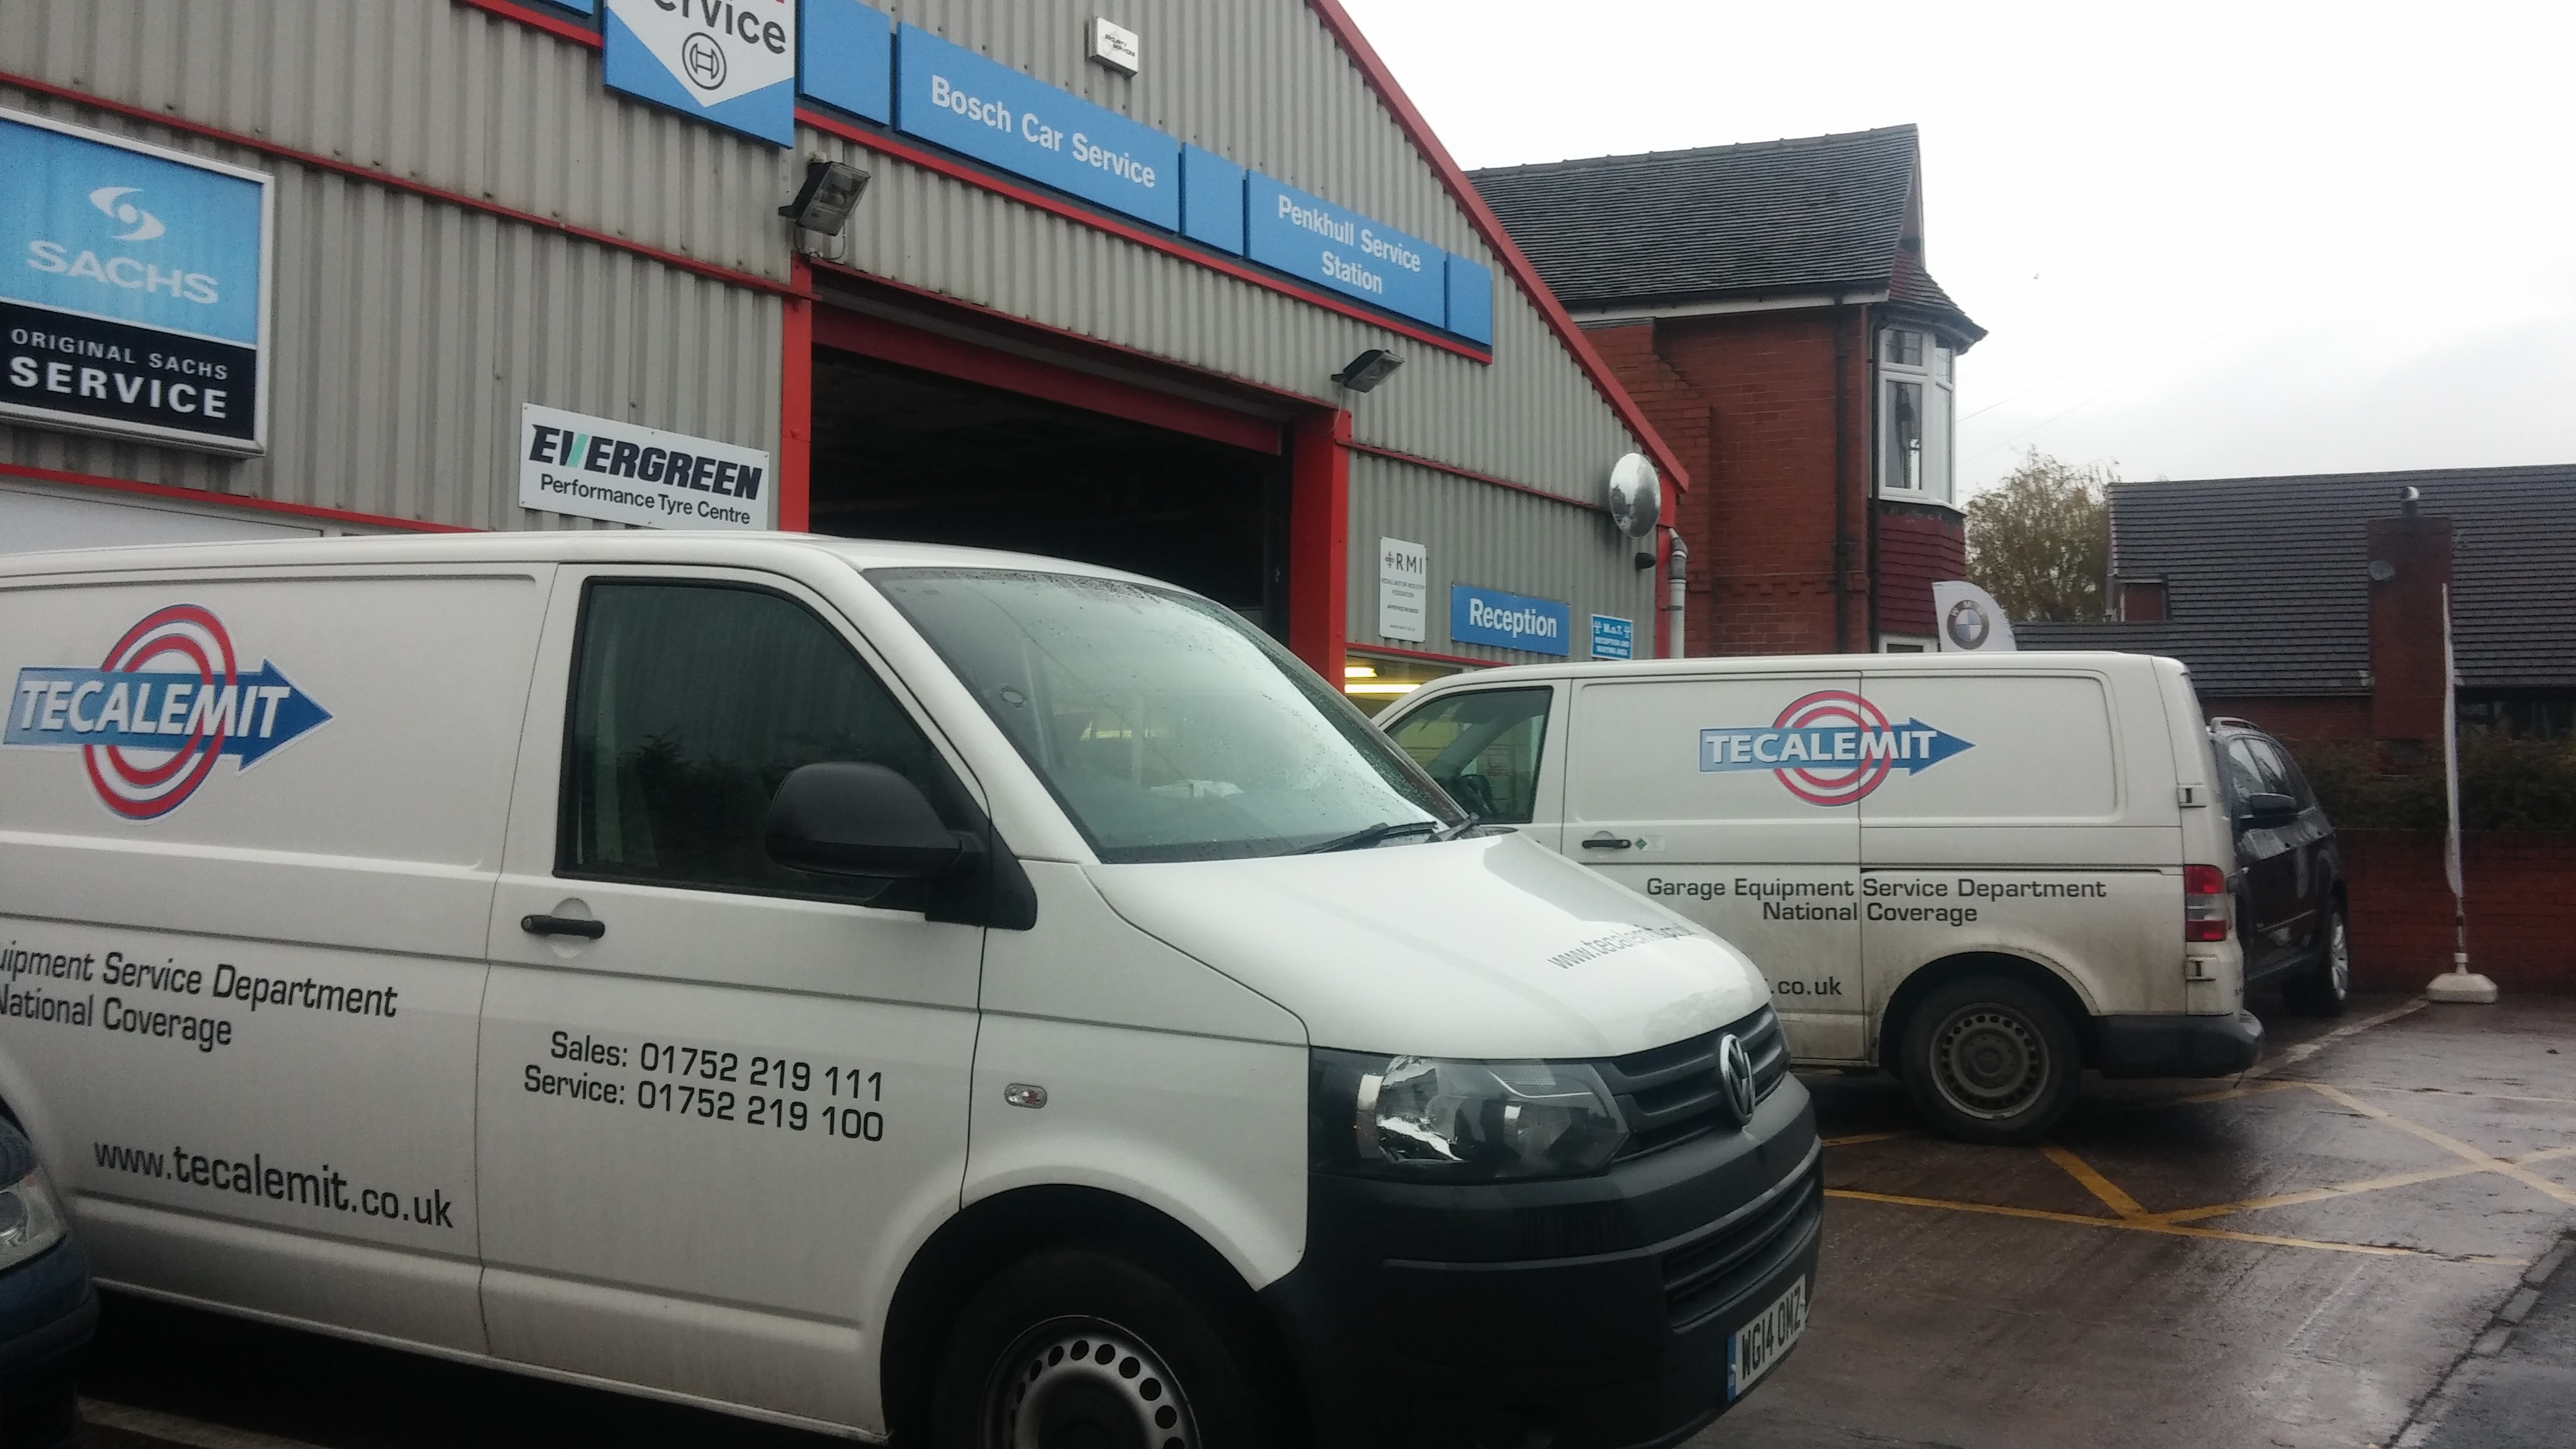 Tecalemit Garage Equipment vans, from Plymouth, in Penkhull Service Station, Stoke-on-Trent, recently.